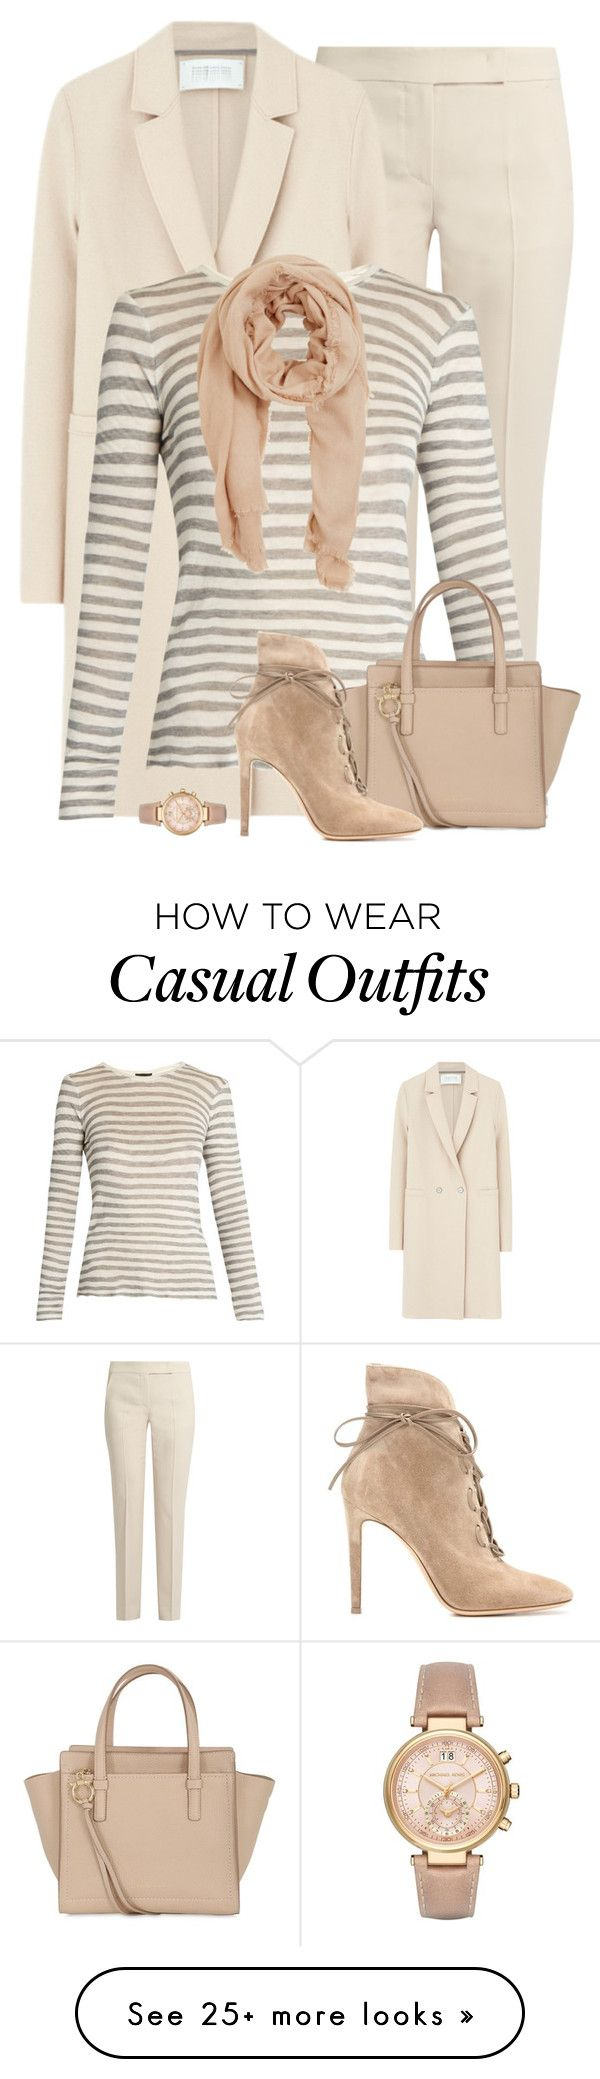 """""""Business Casual"""" by terry-tlc on Polyvore featuring MaxMara, Harris Wharf London, ATM by Anthony Thomas Melillo, Salvatore Ferragamo, MANGO, Gianvito Rossi, Michael Kors, WorkWear, fashionset and polyvoreeditorial"""